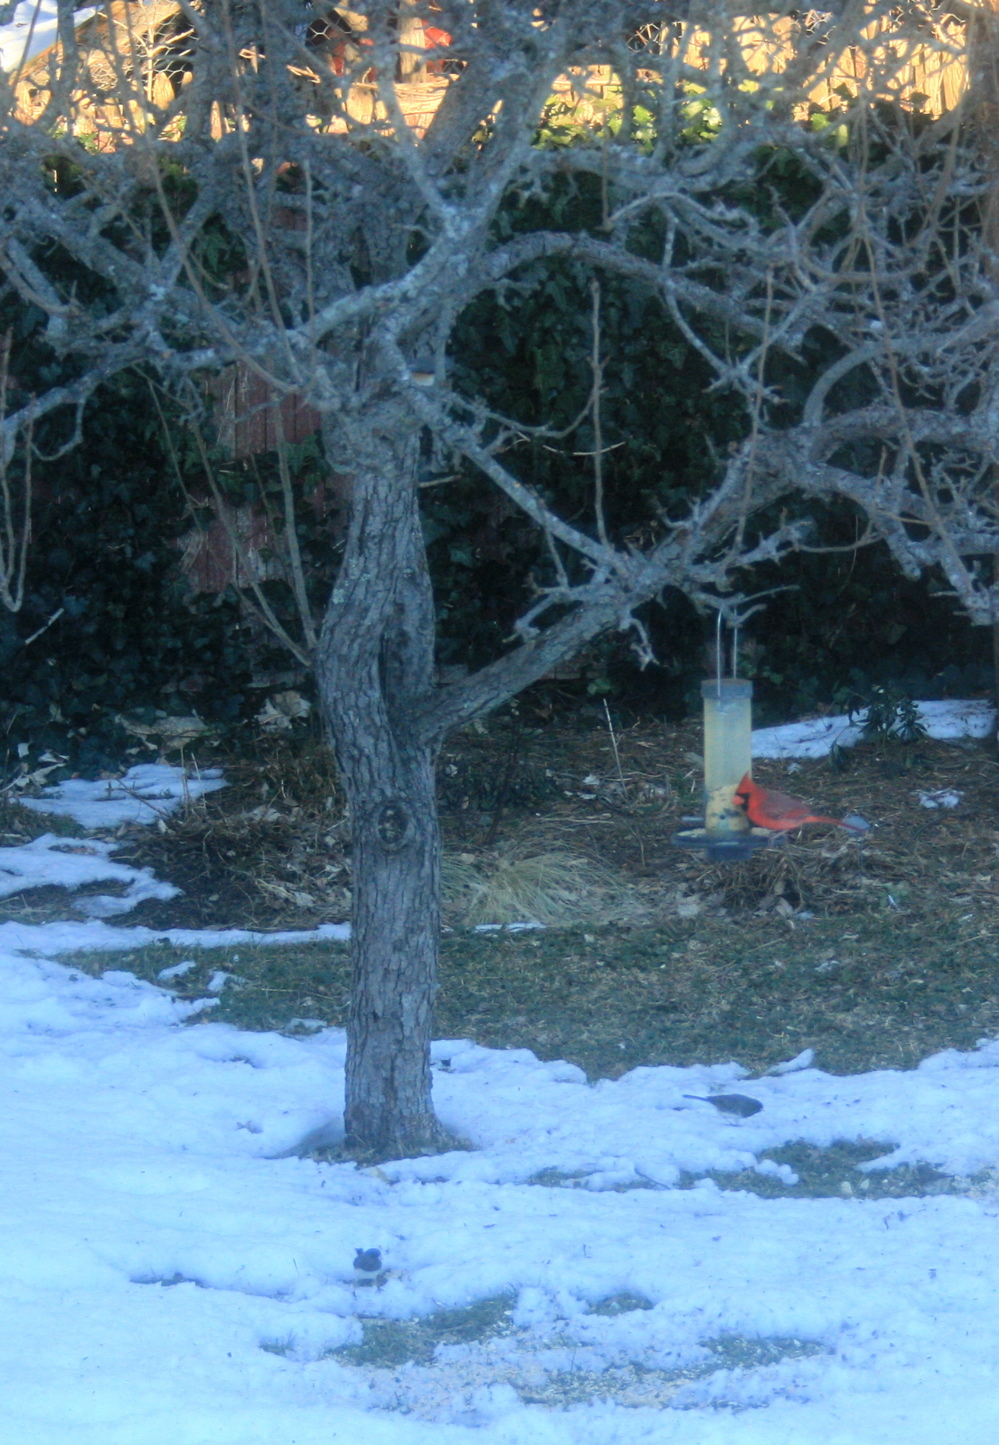 Cardinal and the Juncos(?).  Hey, that's not a bad band name...